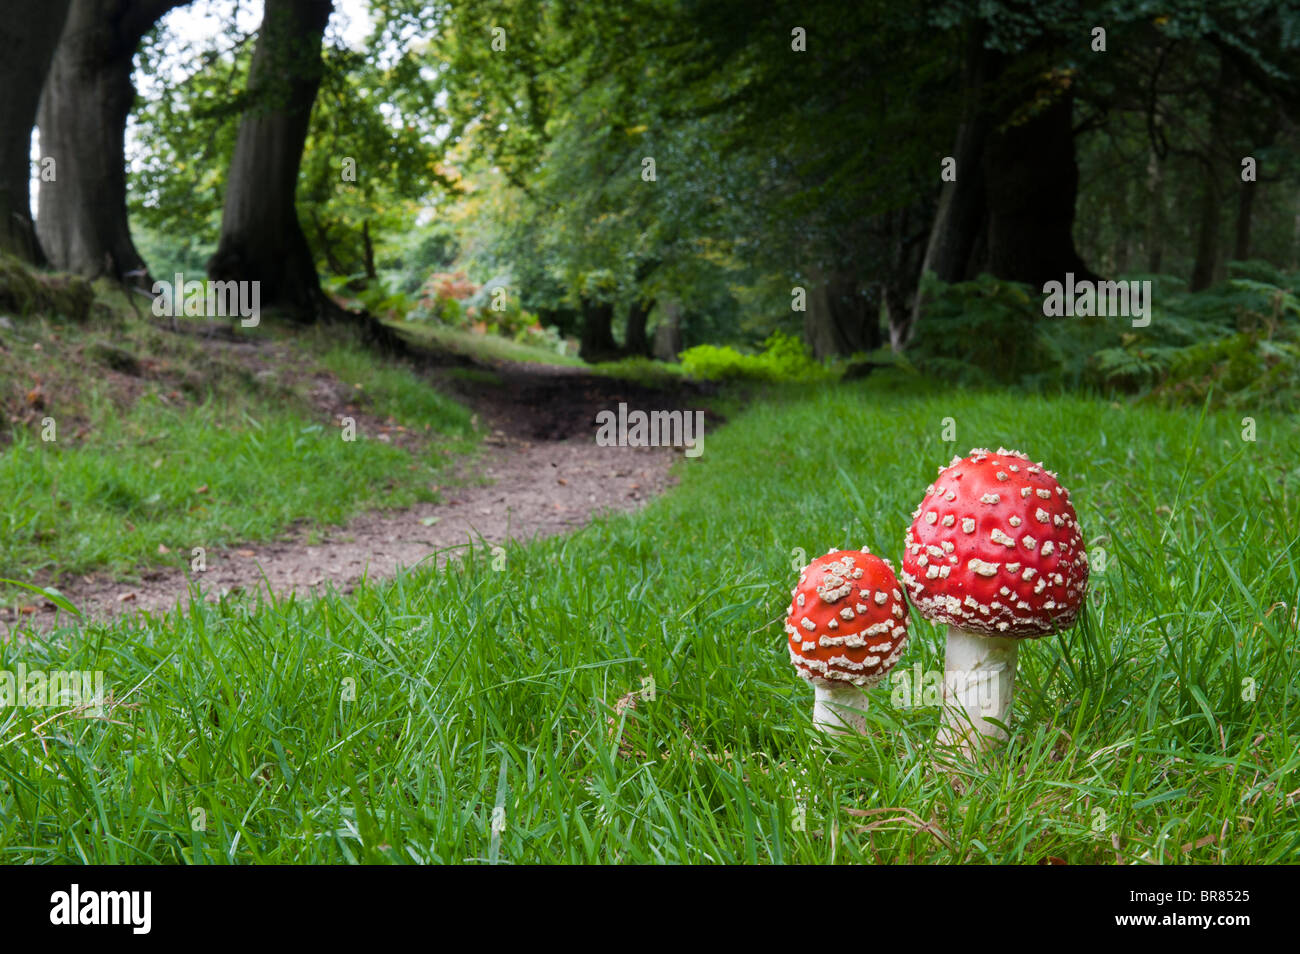 Amanita muscaria, Fly agaric mushrooms beside a woodland path. - Stock Image